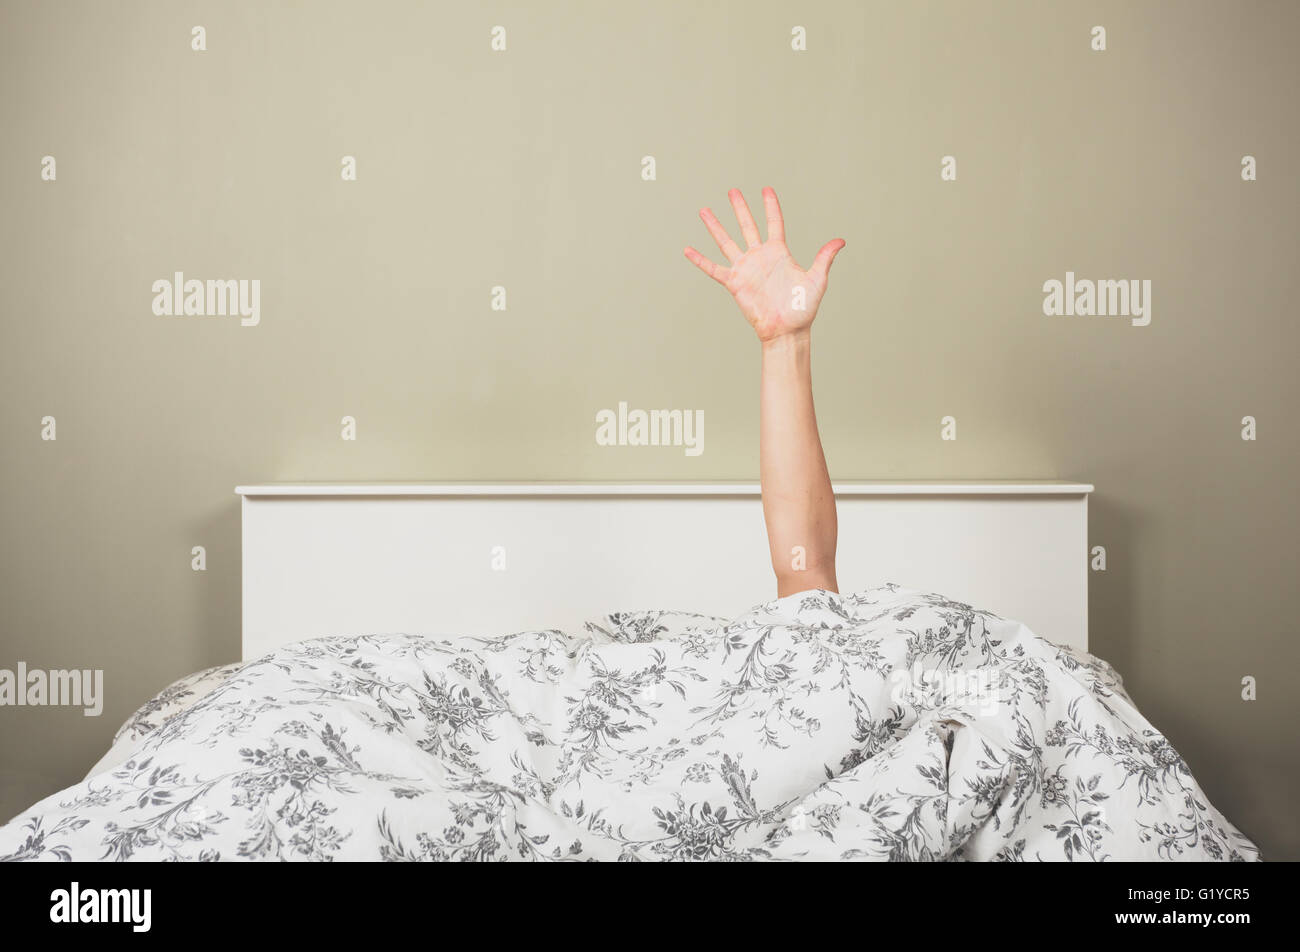 A woman is waving from under the covers in a bed - Stock Image